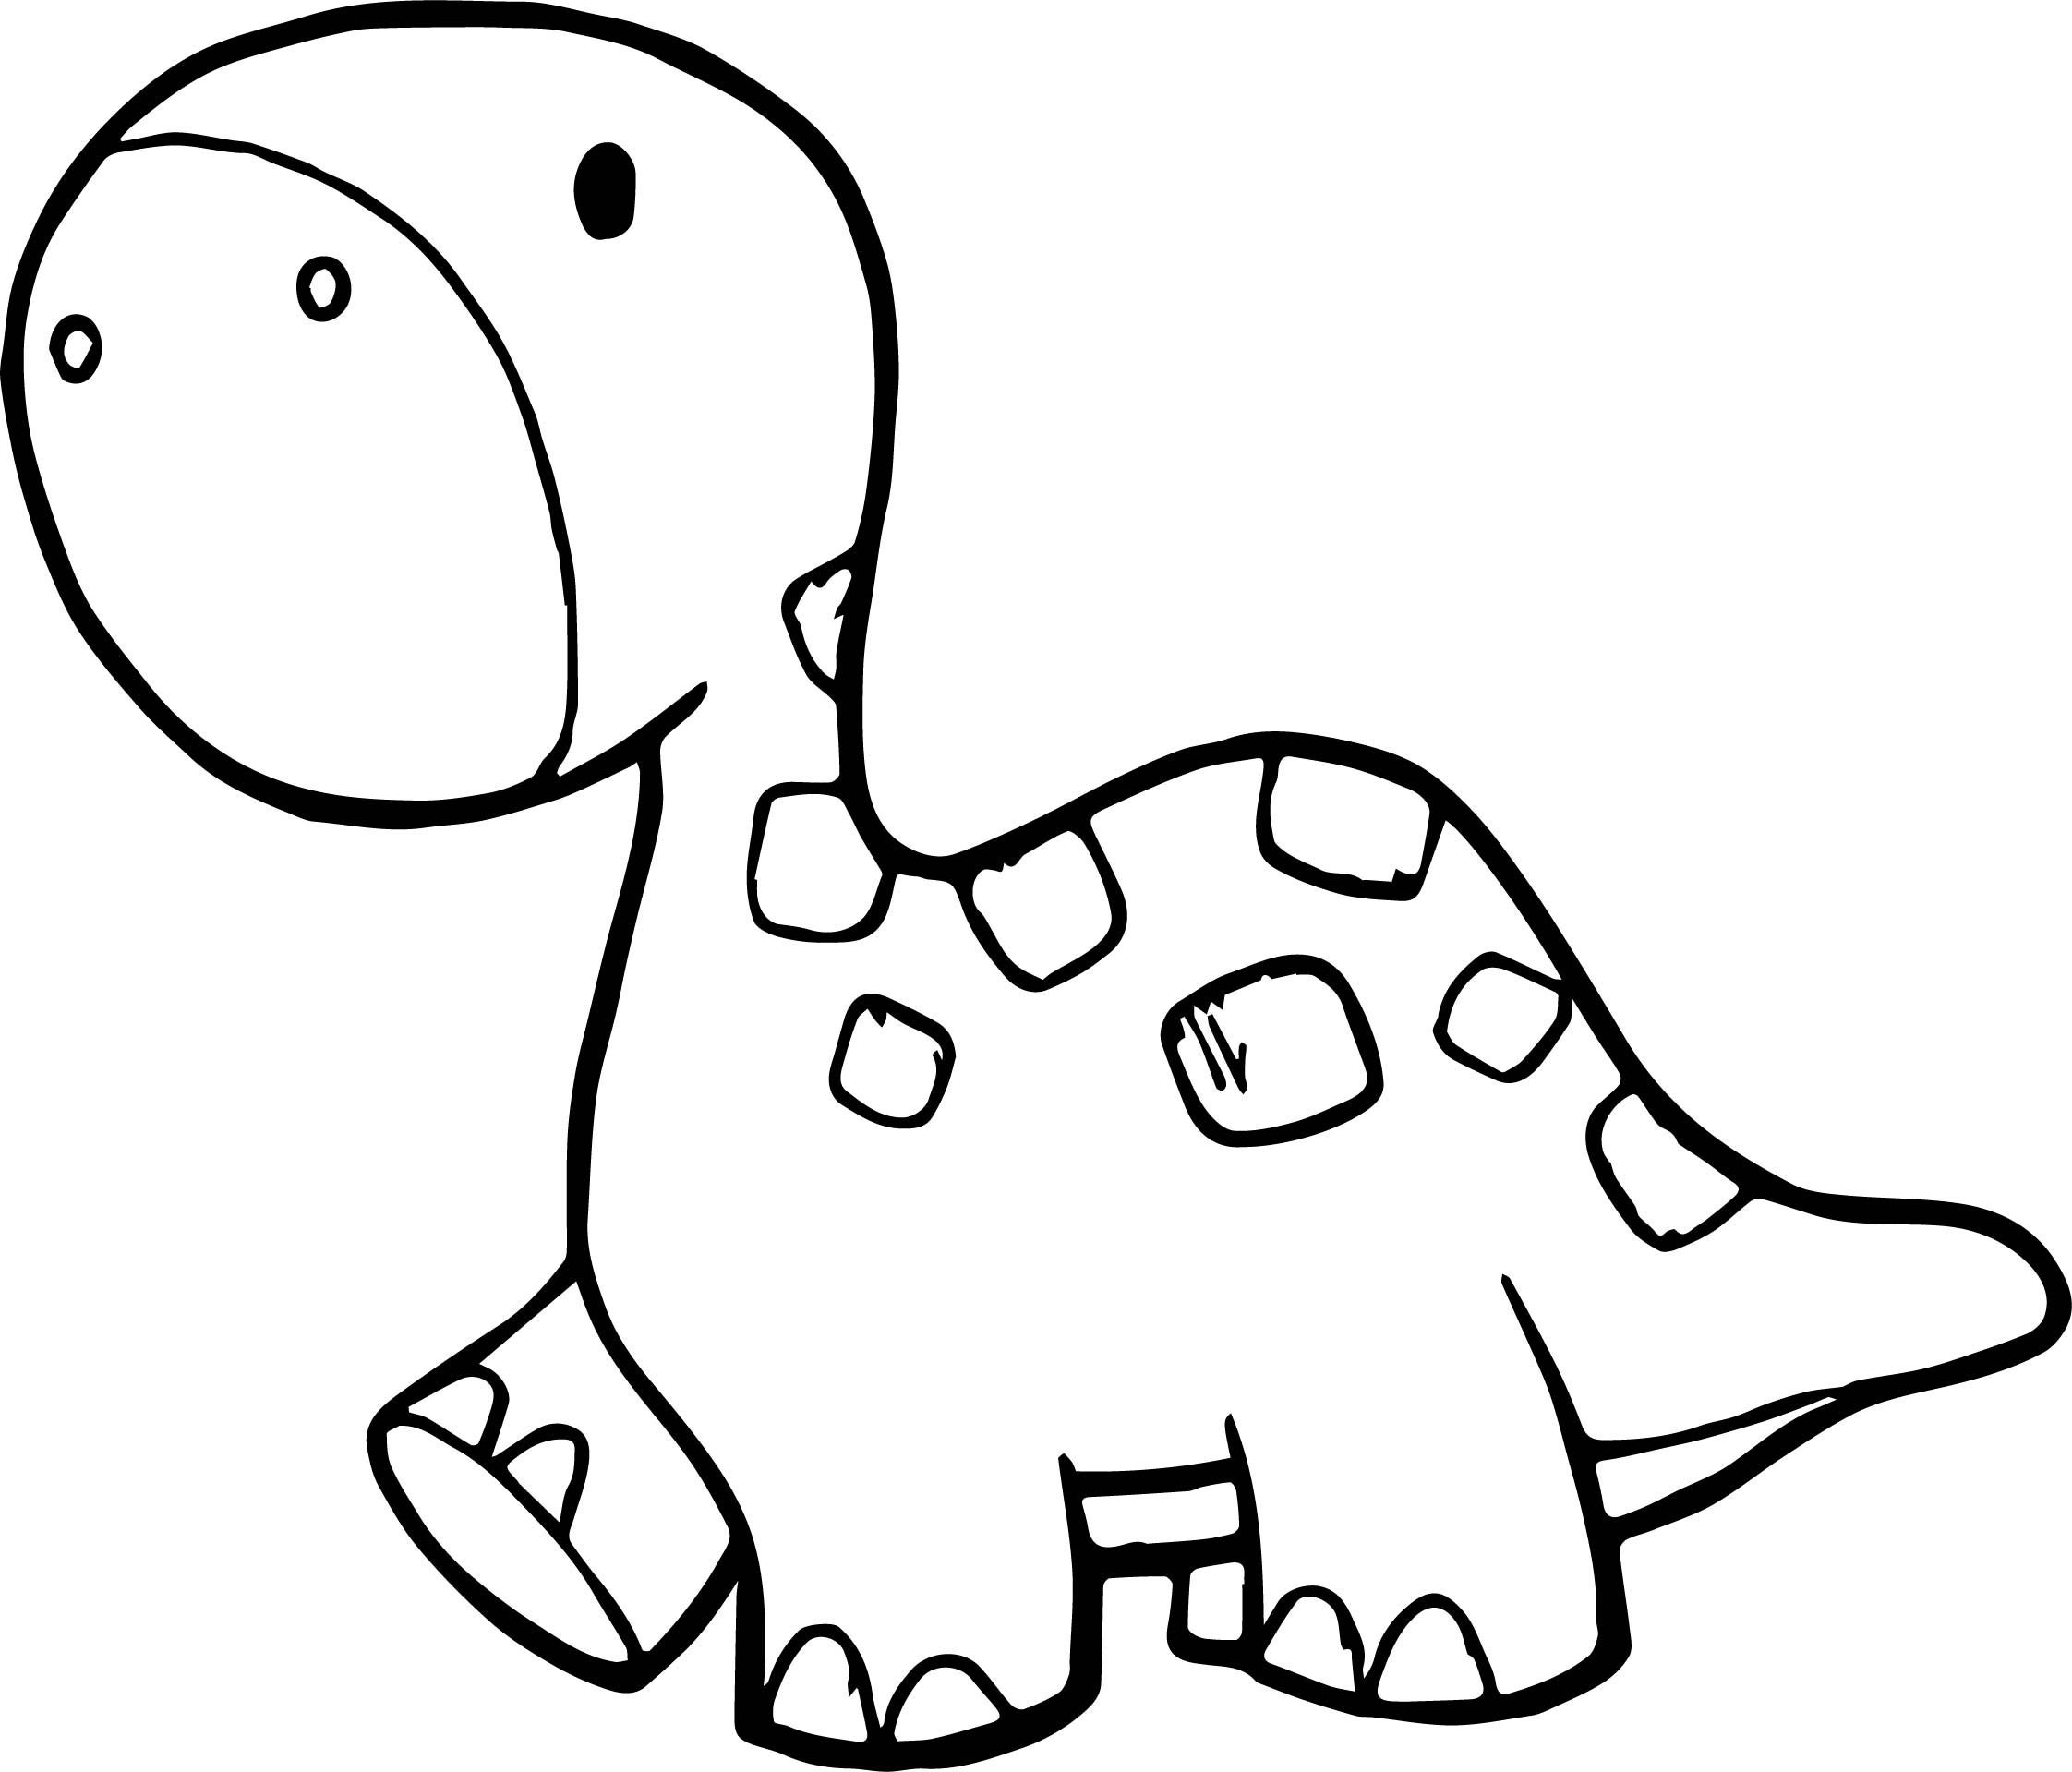 Walking Smaller Dinosaur Coloring Page